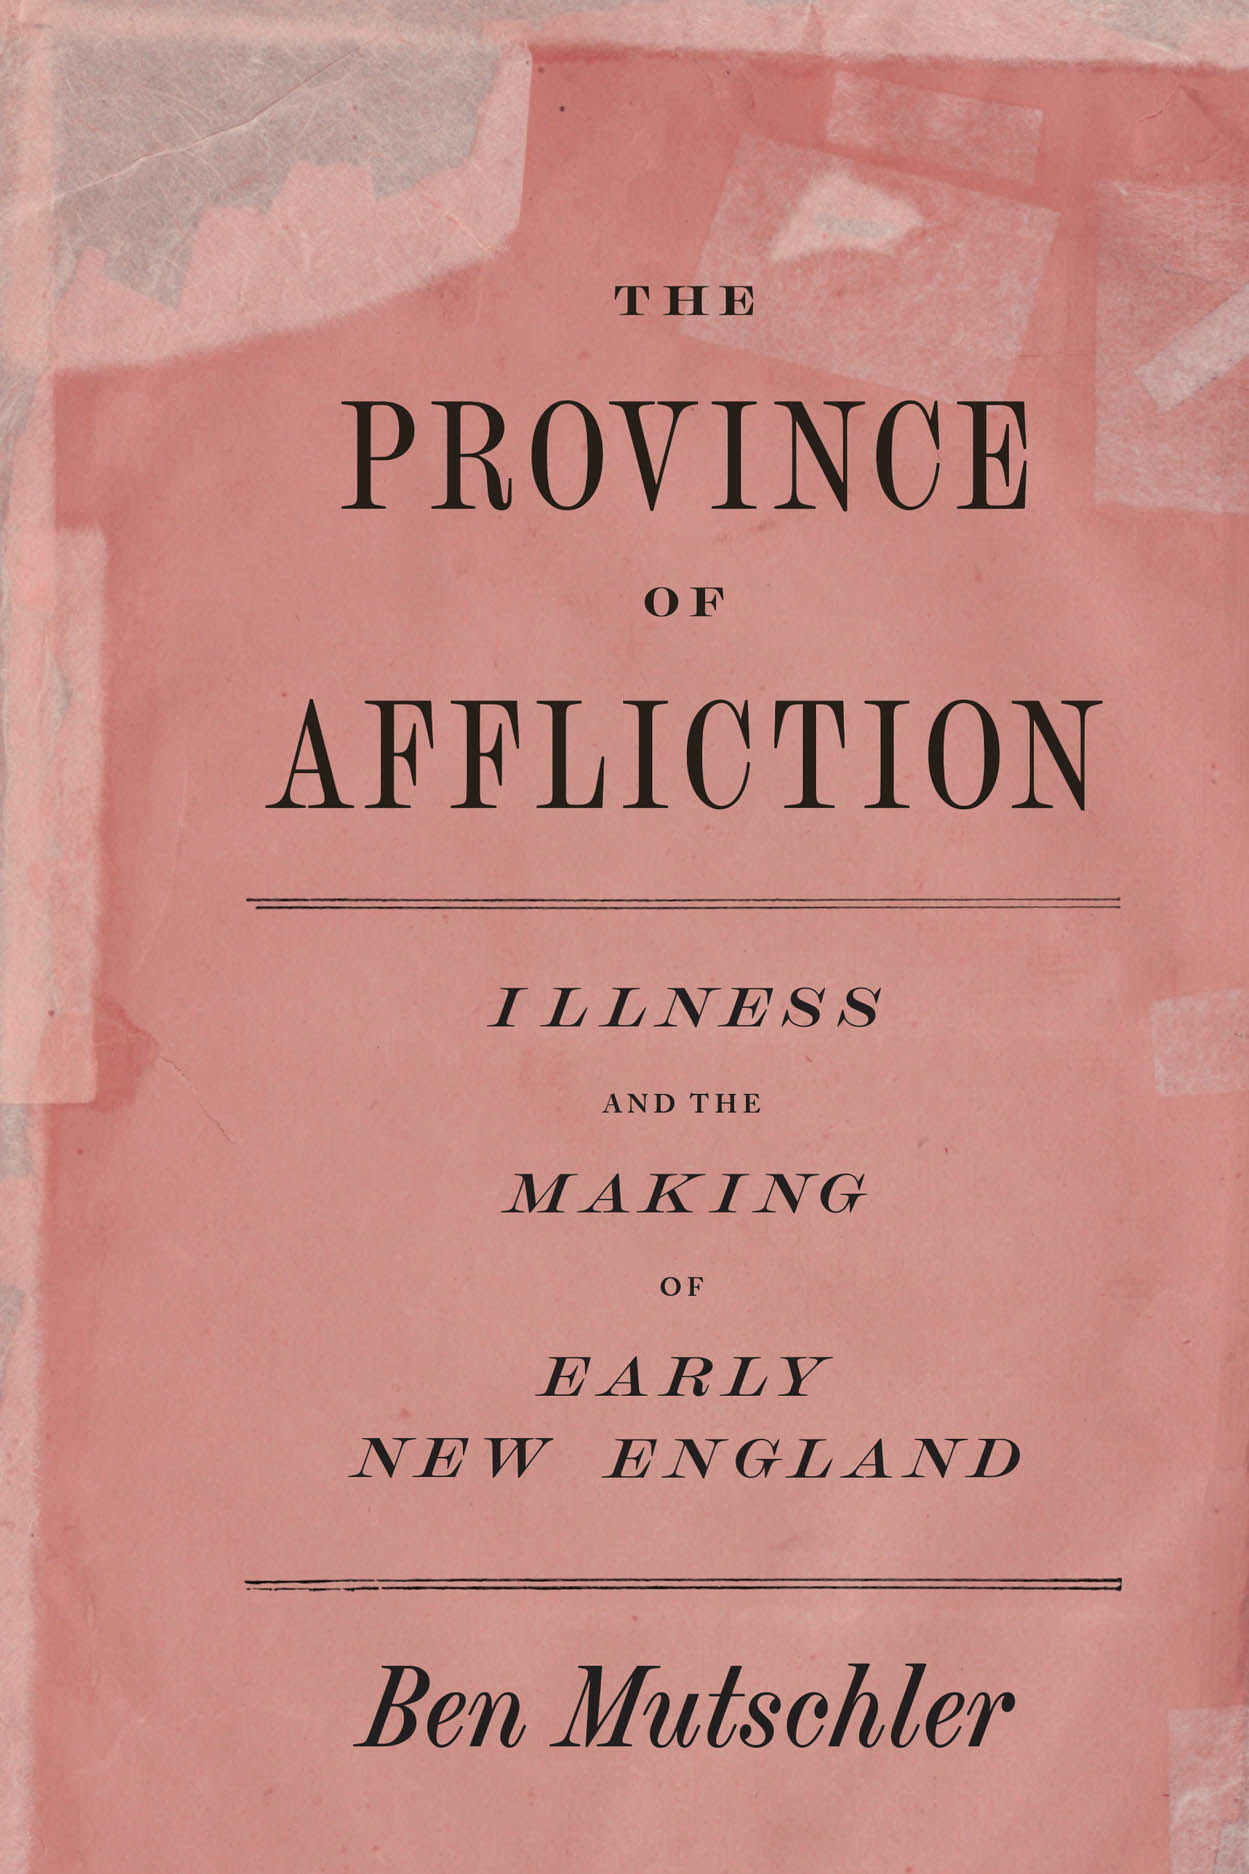 The Province of Affliction: Illness and the Making of Early New England